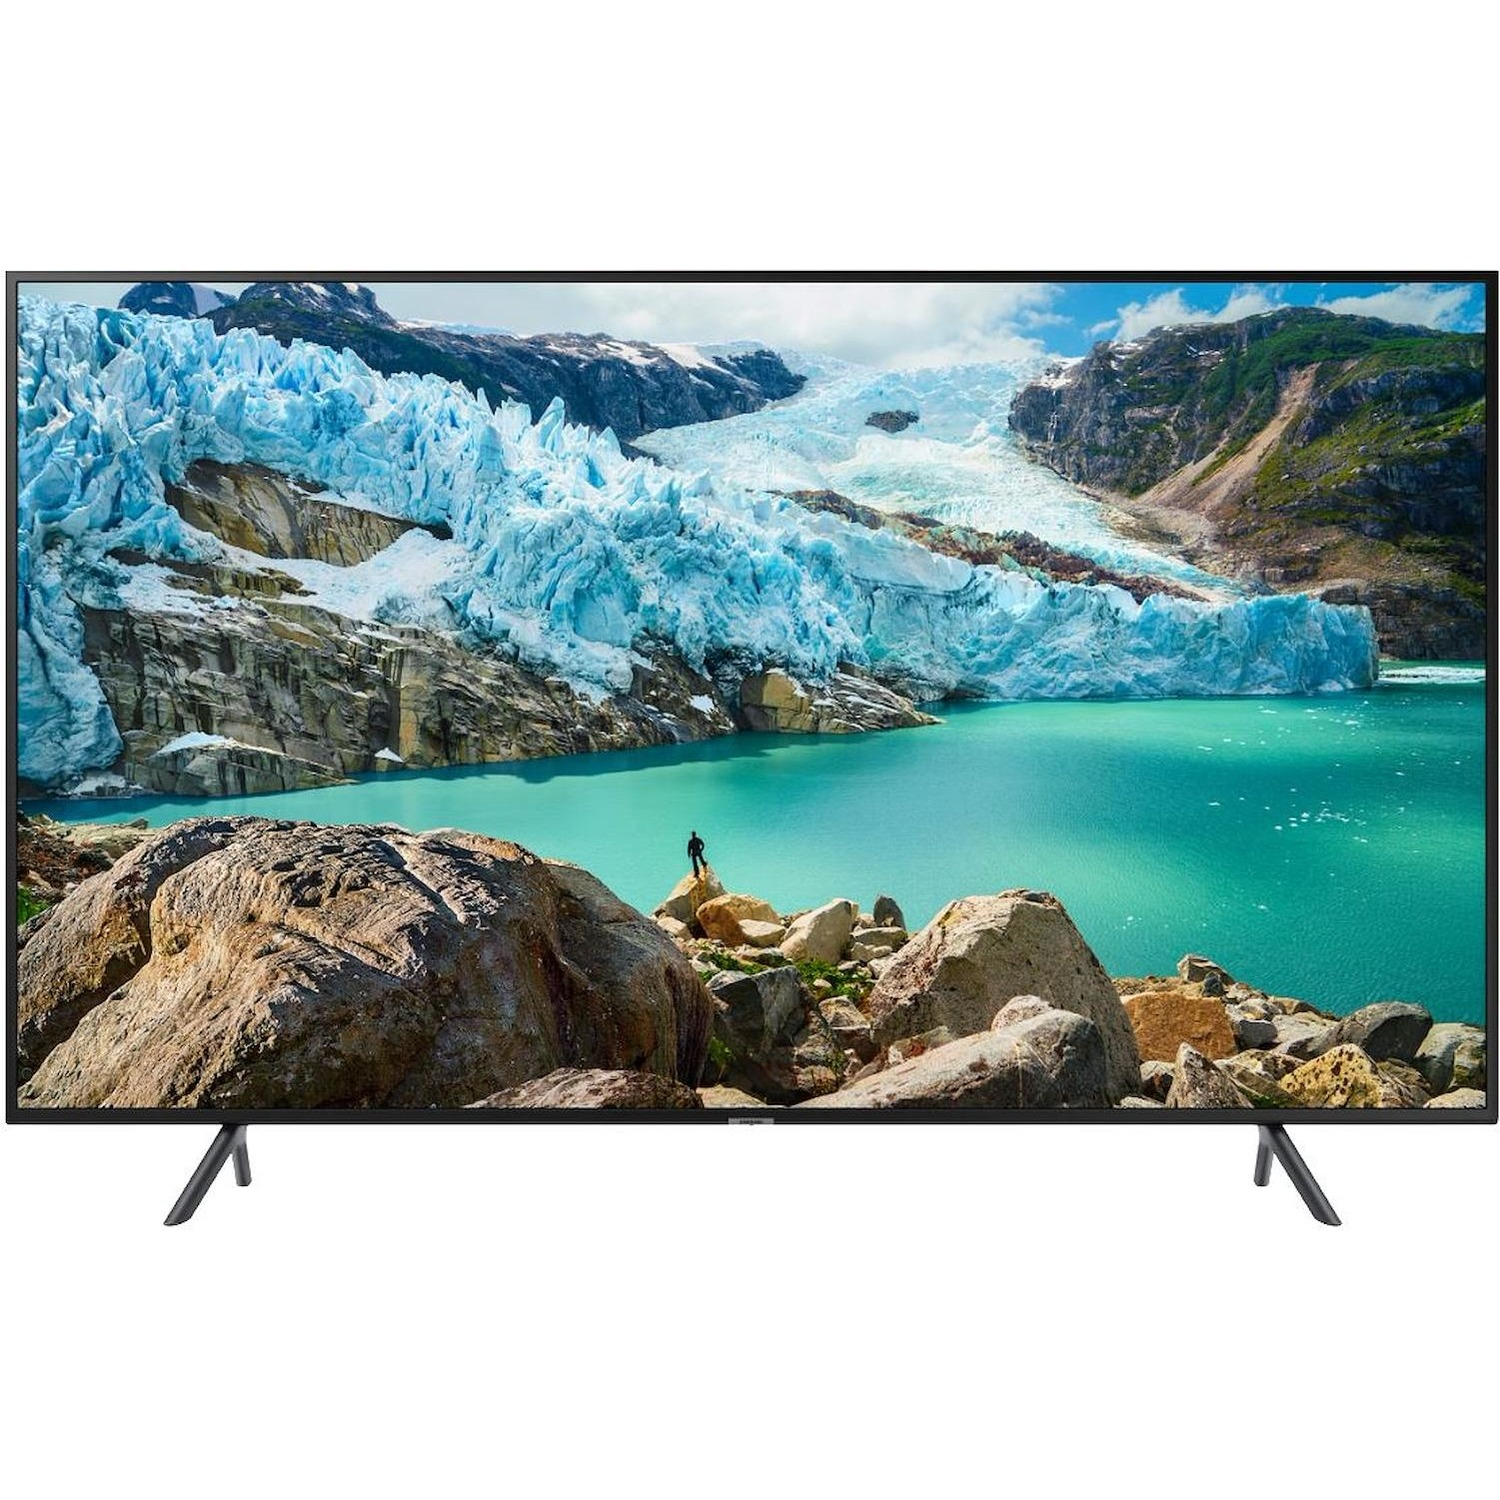 Immagine per TV LED Smart 4K UHD Samsung 65RU7170 da DIMOStore